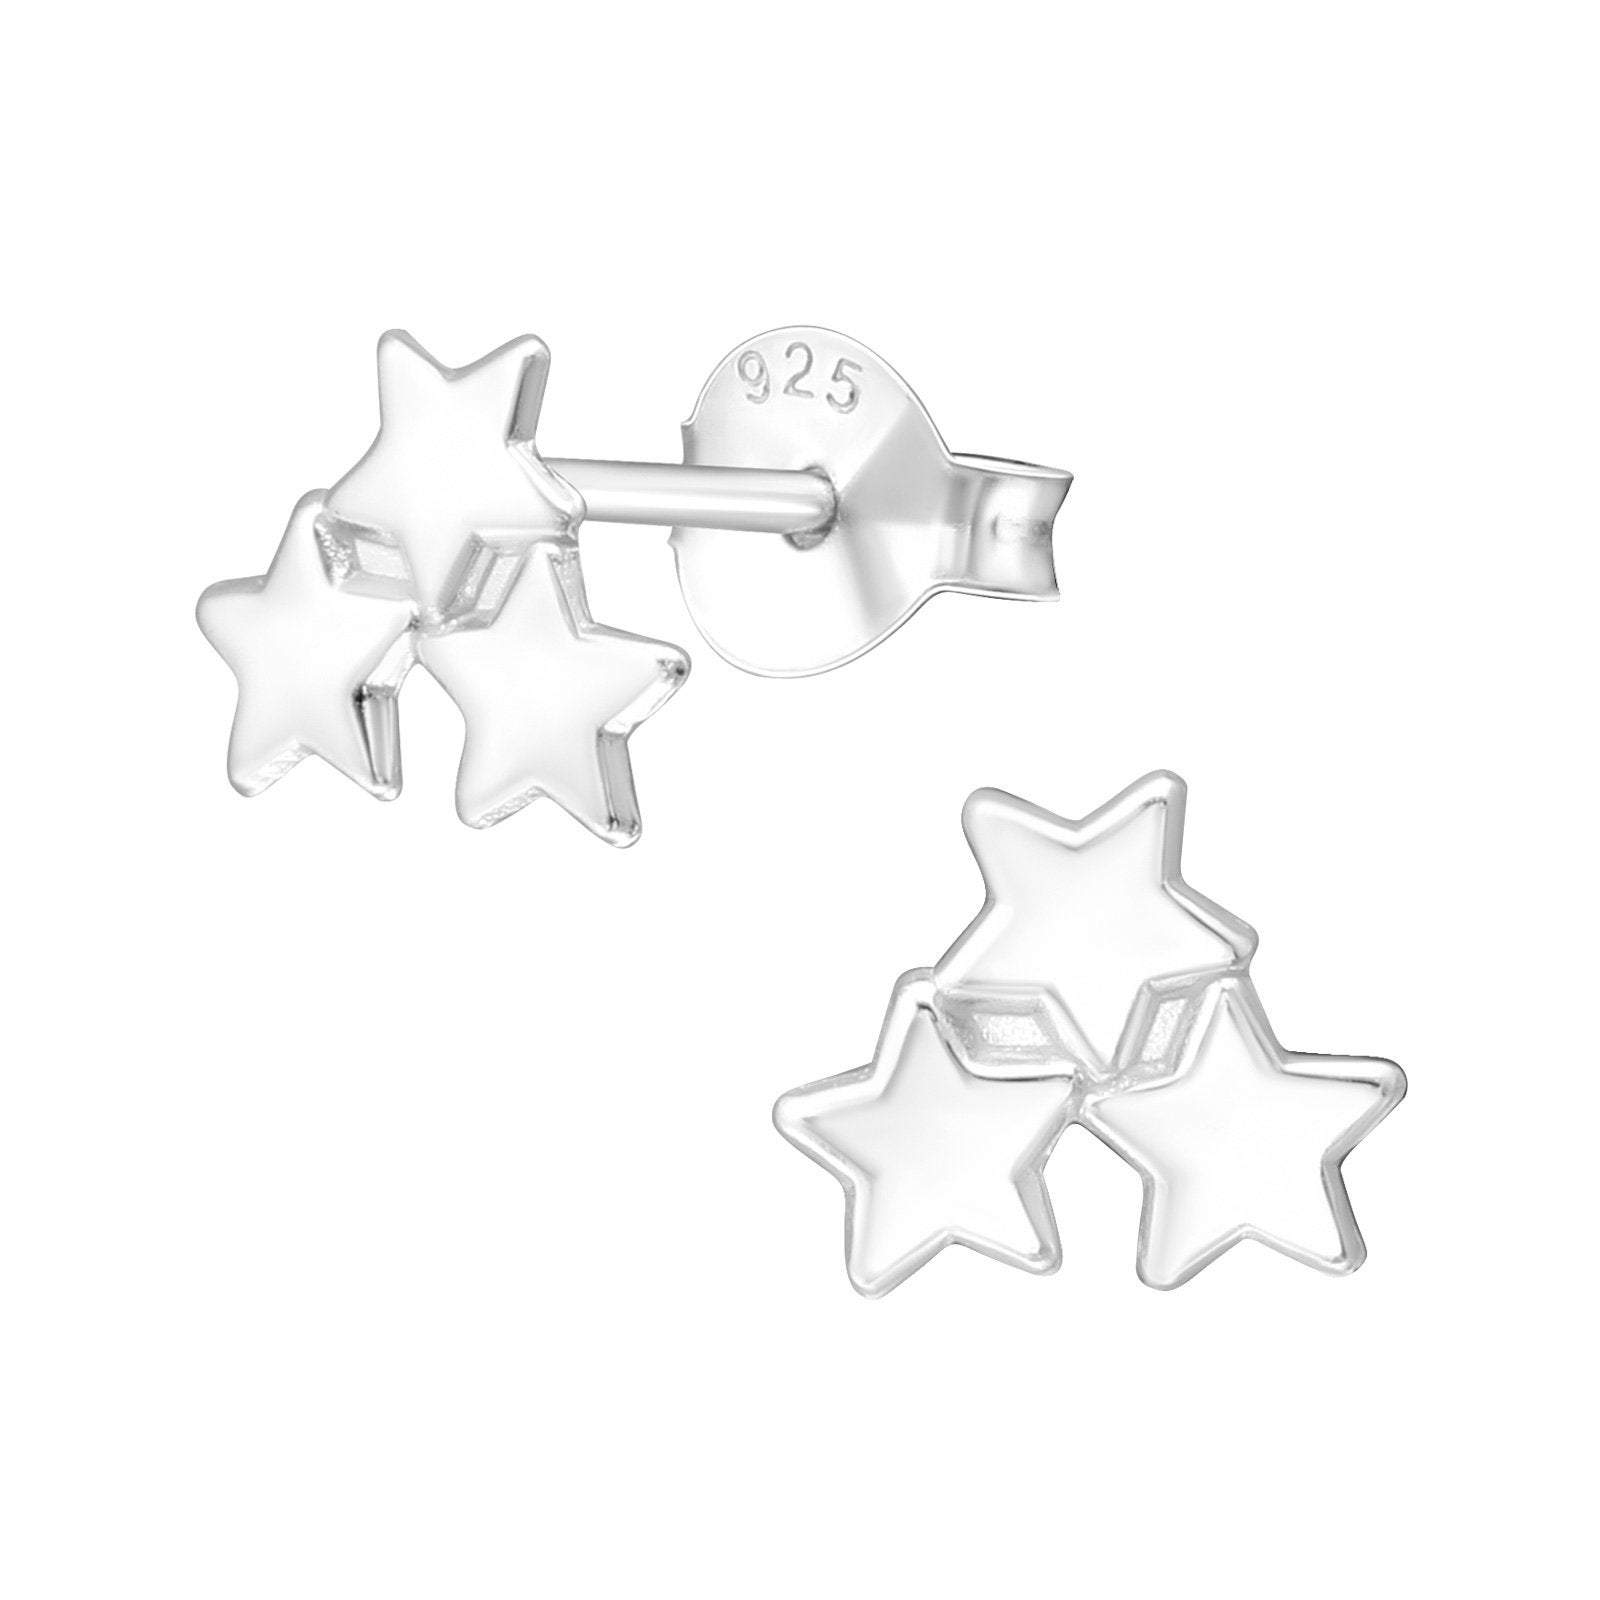 Gift for 30th birthday. Each star for each decade. Star ear stud jewellery with box